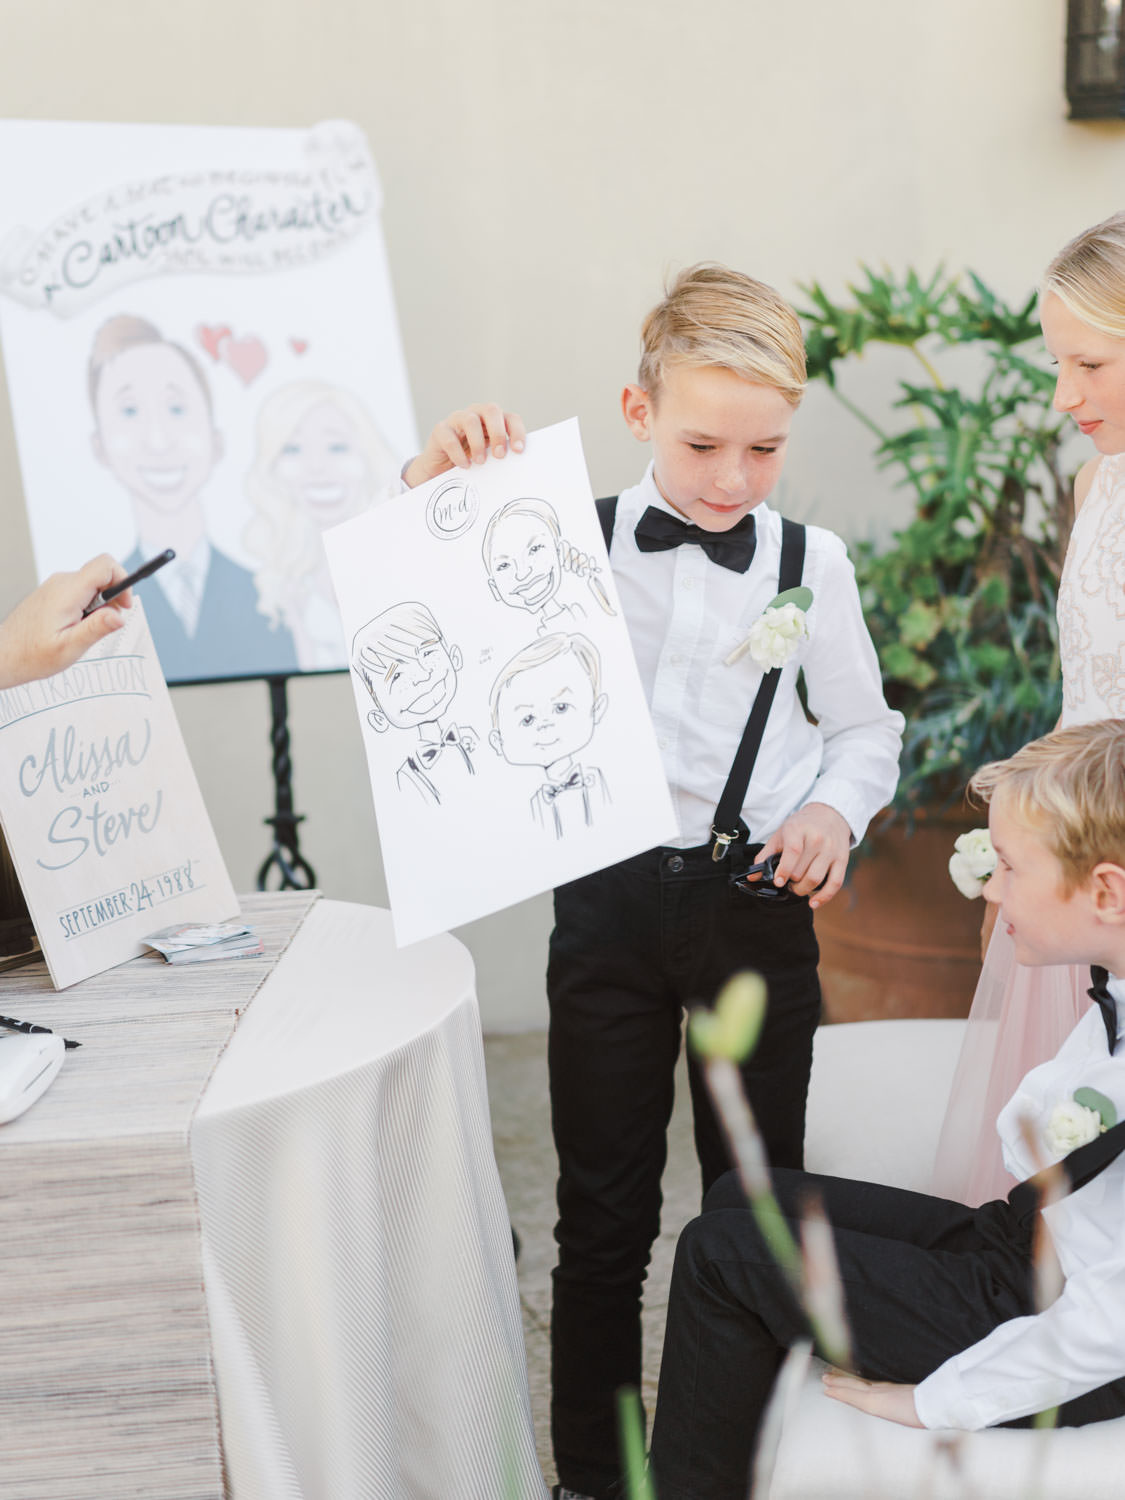 Children at wedding having caricatures drawn of themselves. Estancia La Jolla wedding shot on film by Cavin Elizabeth Photography